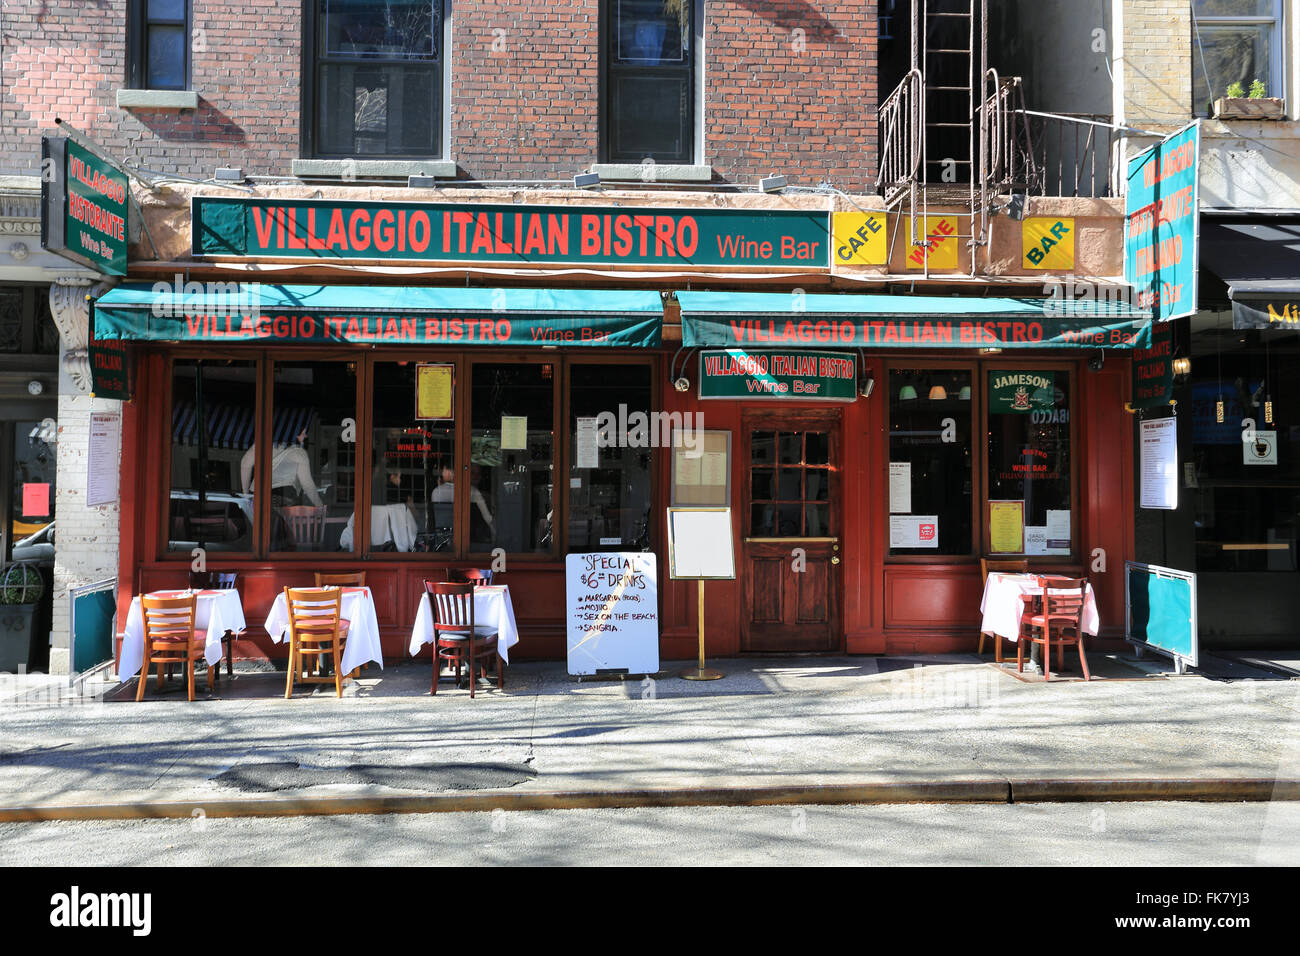 Italian Restaurant Greenwich Village New York City Stock